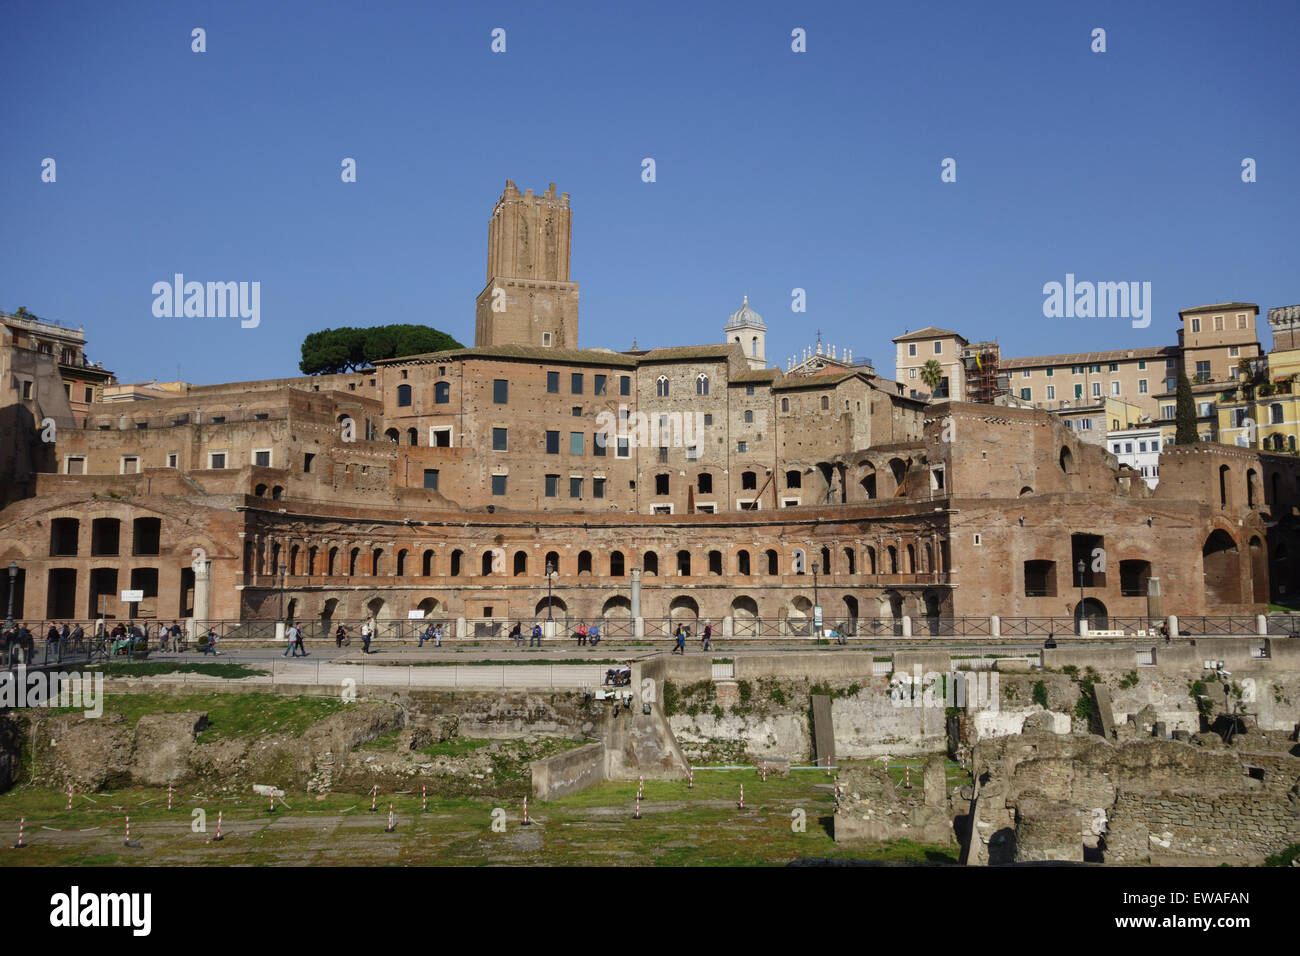 Ancient remains of the Trajan's Market Rome Italy Stock Photo